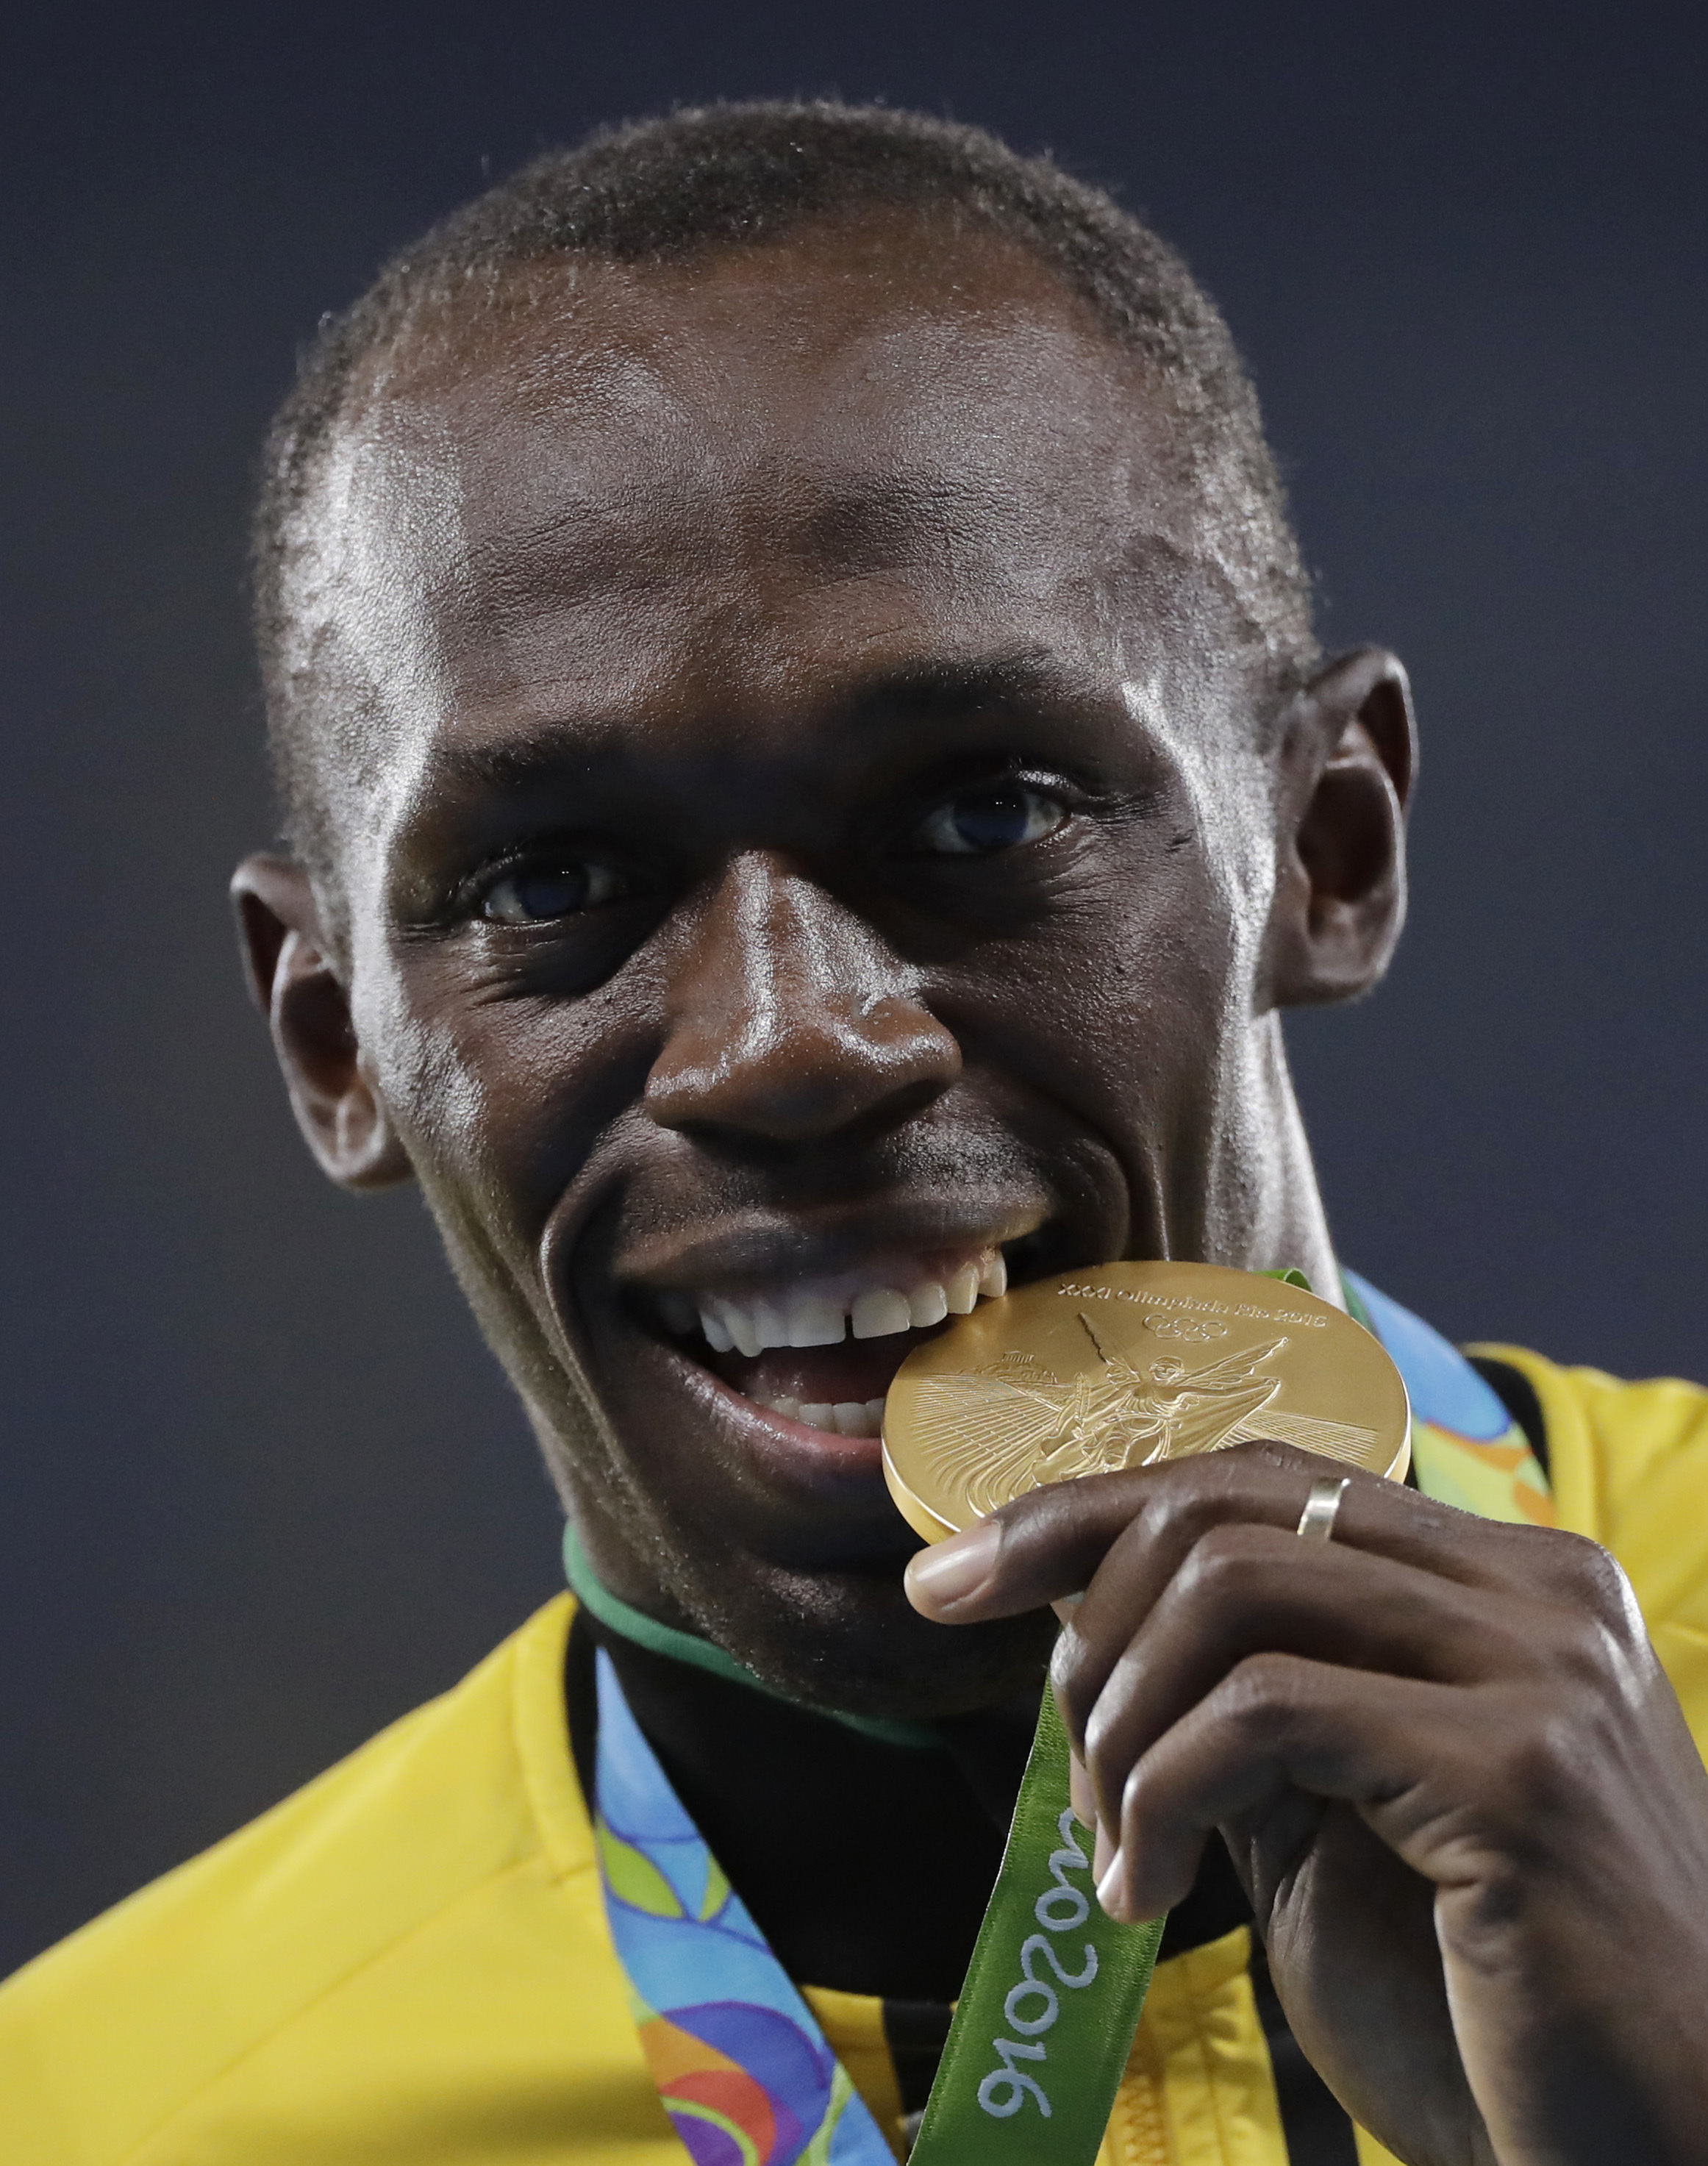 FILE - In this Aug. 20, 2016 file photo Jamaica's Usain Bolt poses with his gold medal for the men's 4x100 meters relay during an athletics podium ceremony at the Summer Olympics at Olympic stadium in Rio de Janeiro, Brazil. Bolt will return to the Golden